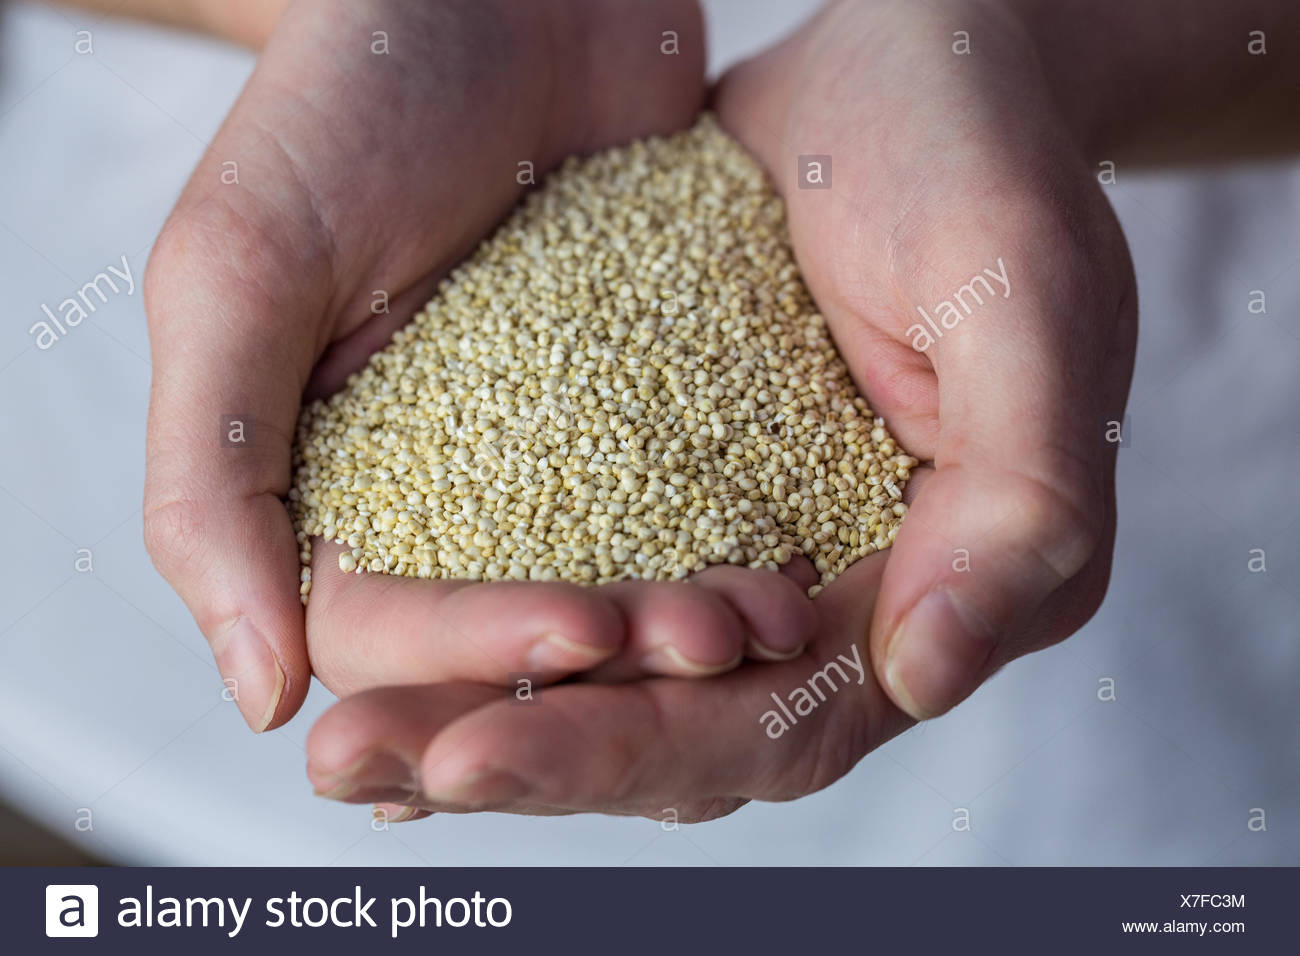 Woman showing handful of sesame seed - Stock Image